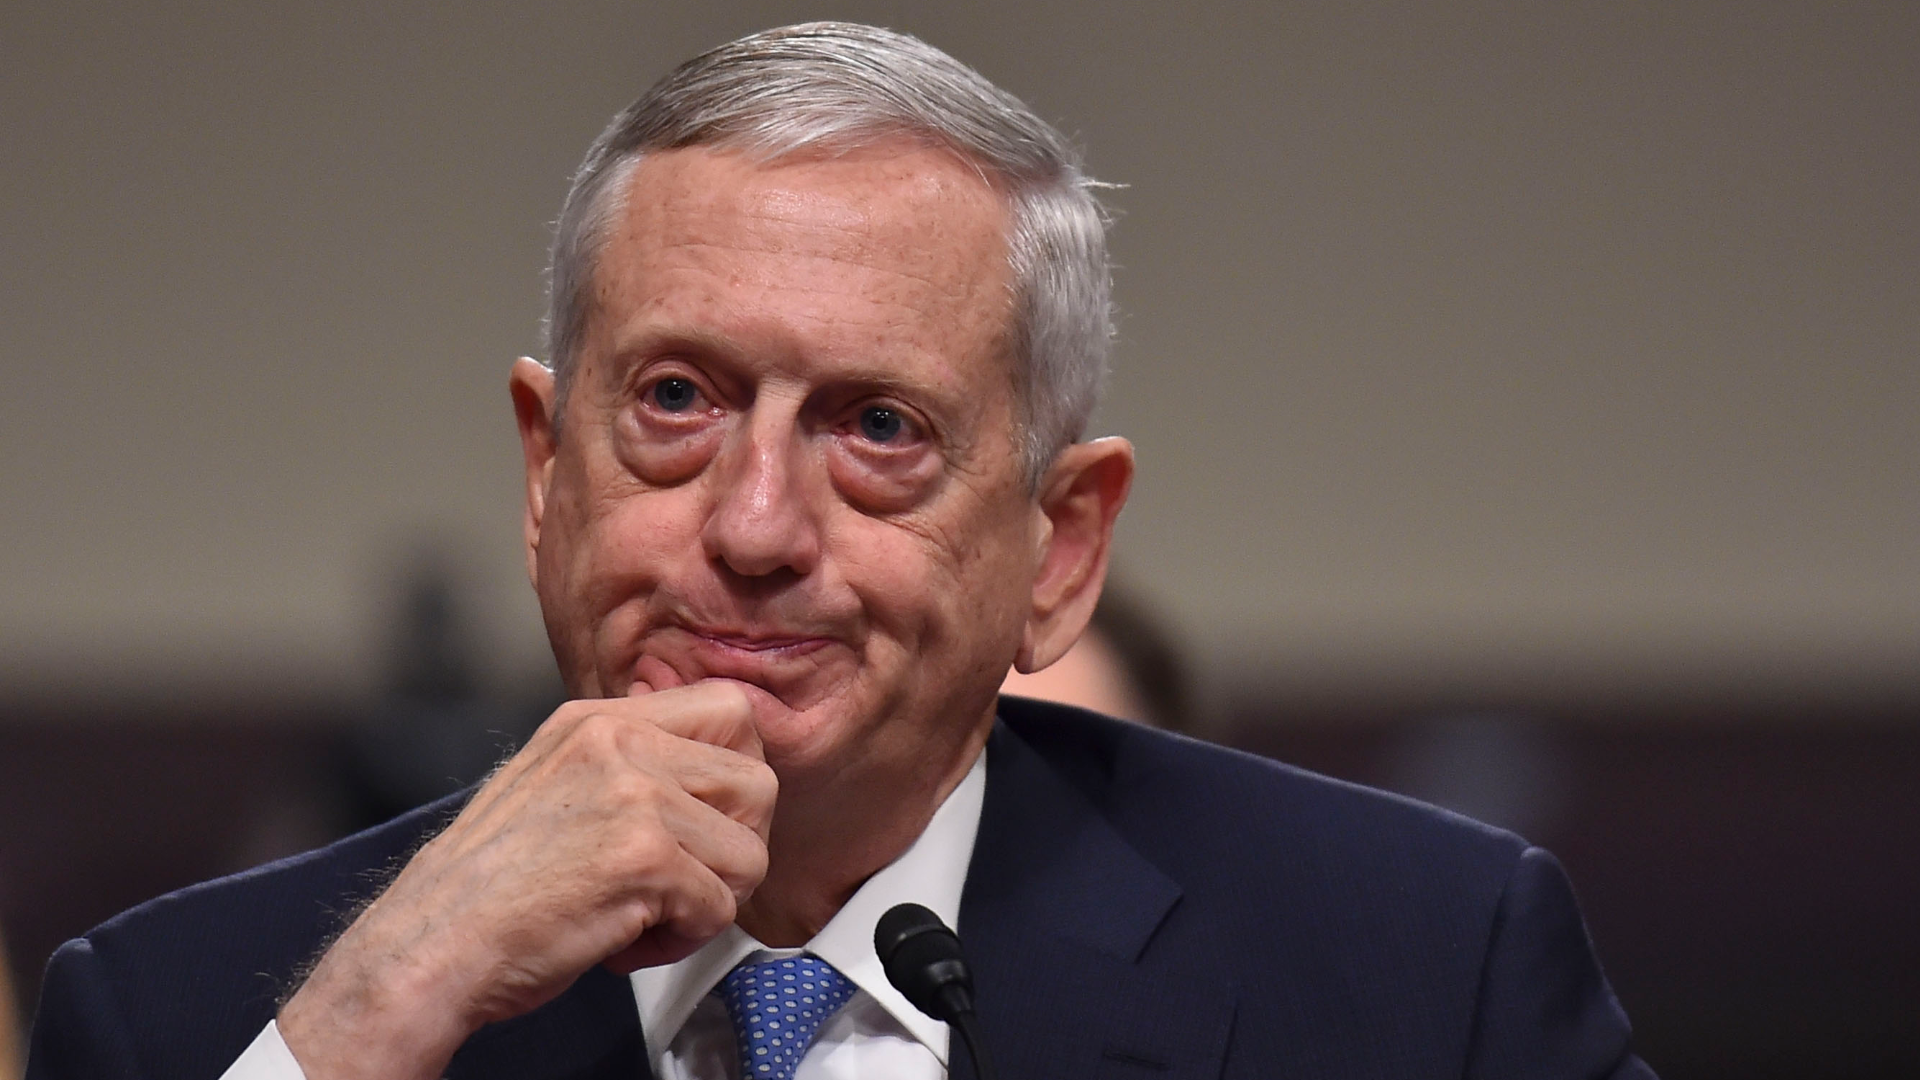 Placing Russia first among threats, Defense nominee warns of Kremlin attempts to 'break' NATO